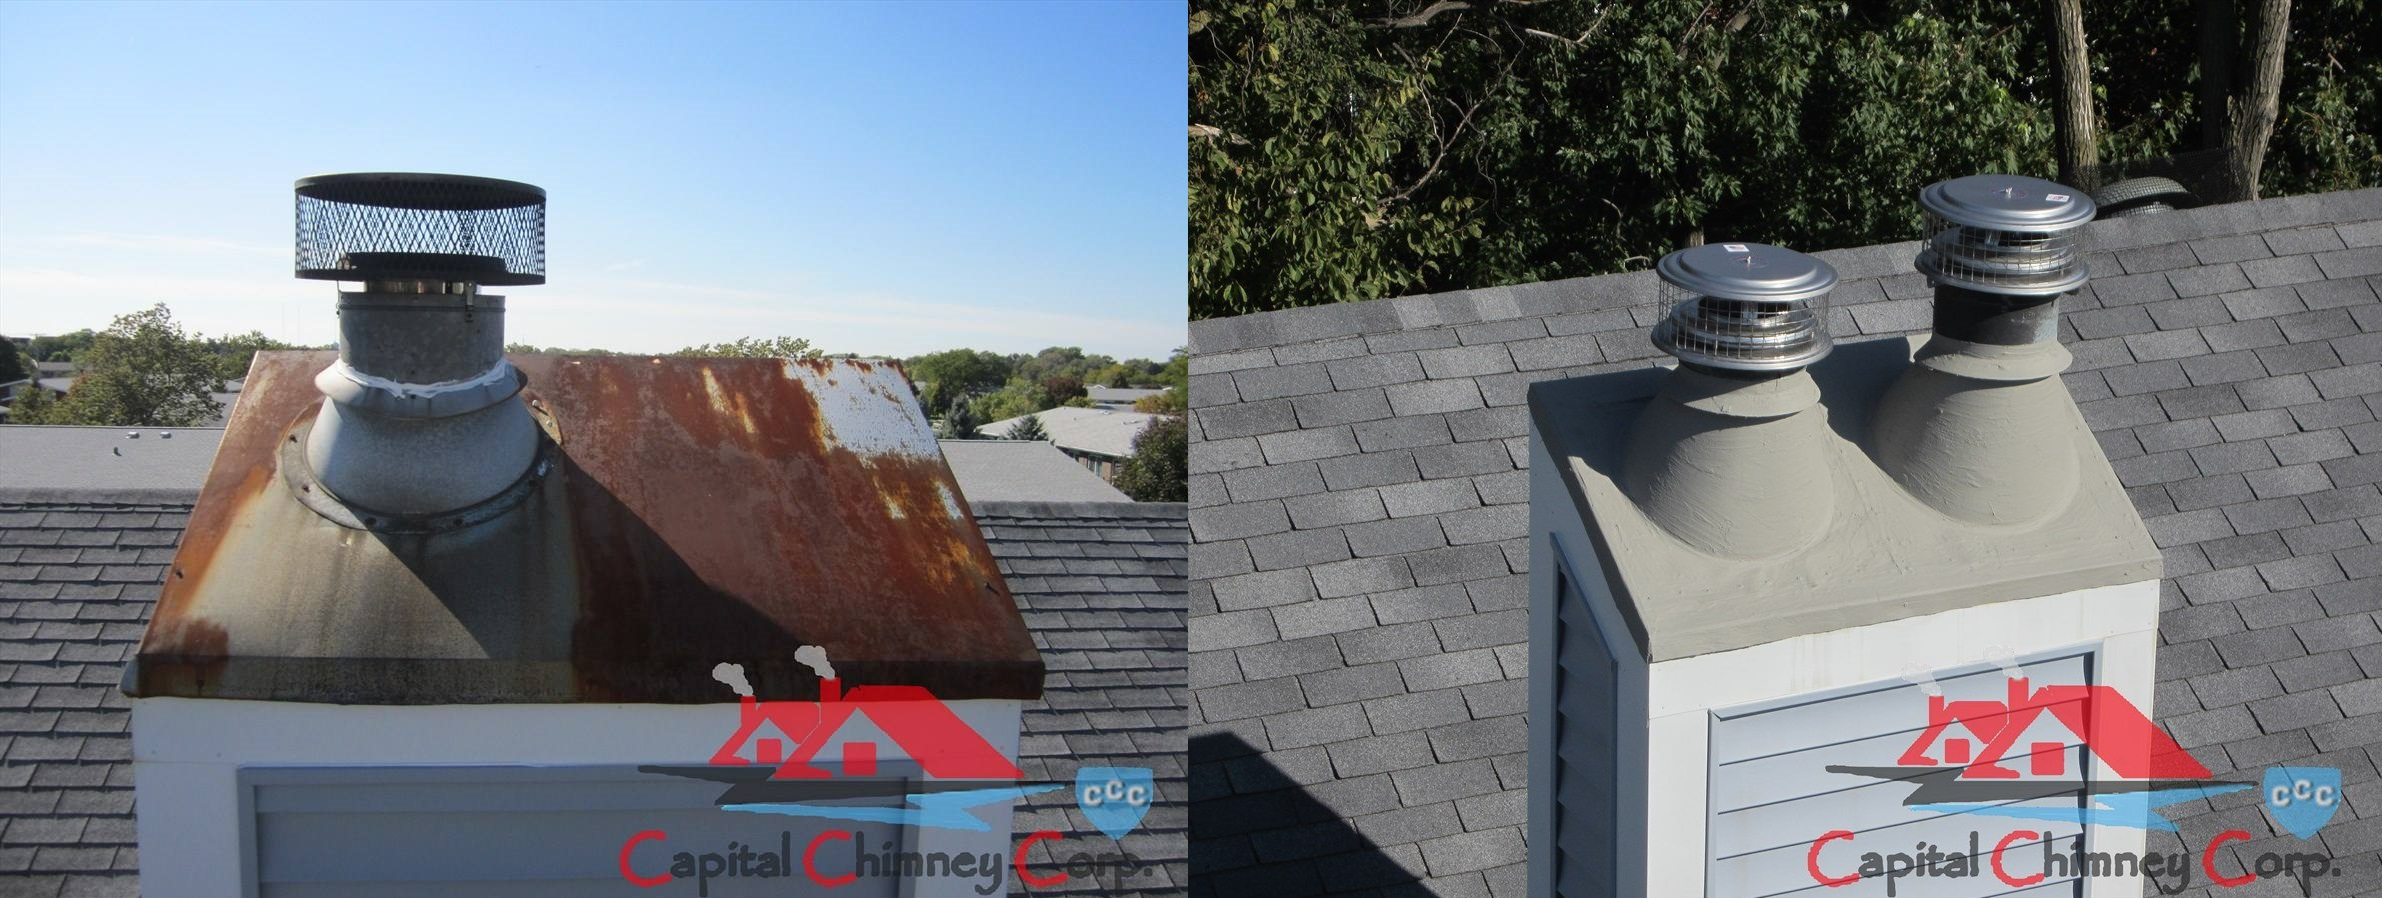 Before and After Chimney Cap Replacement